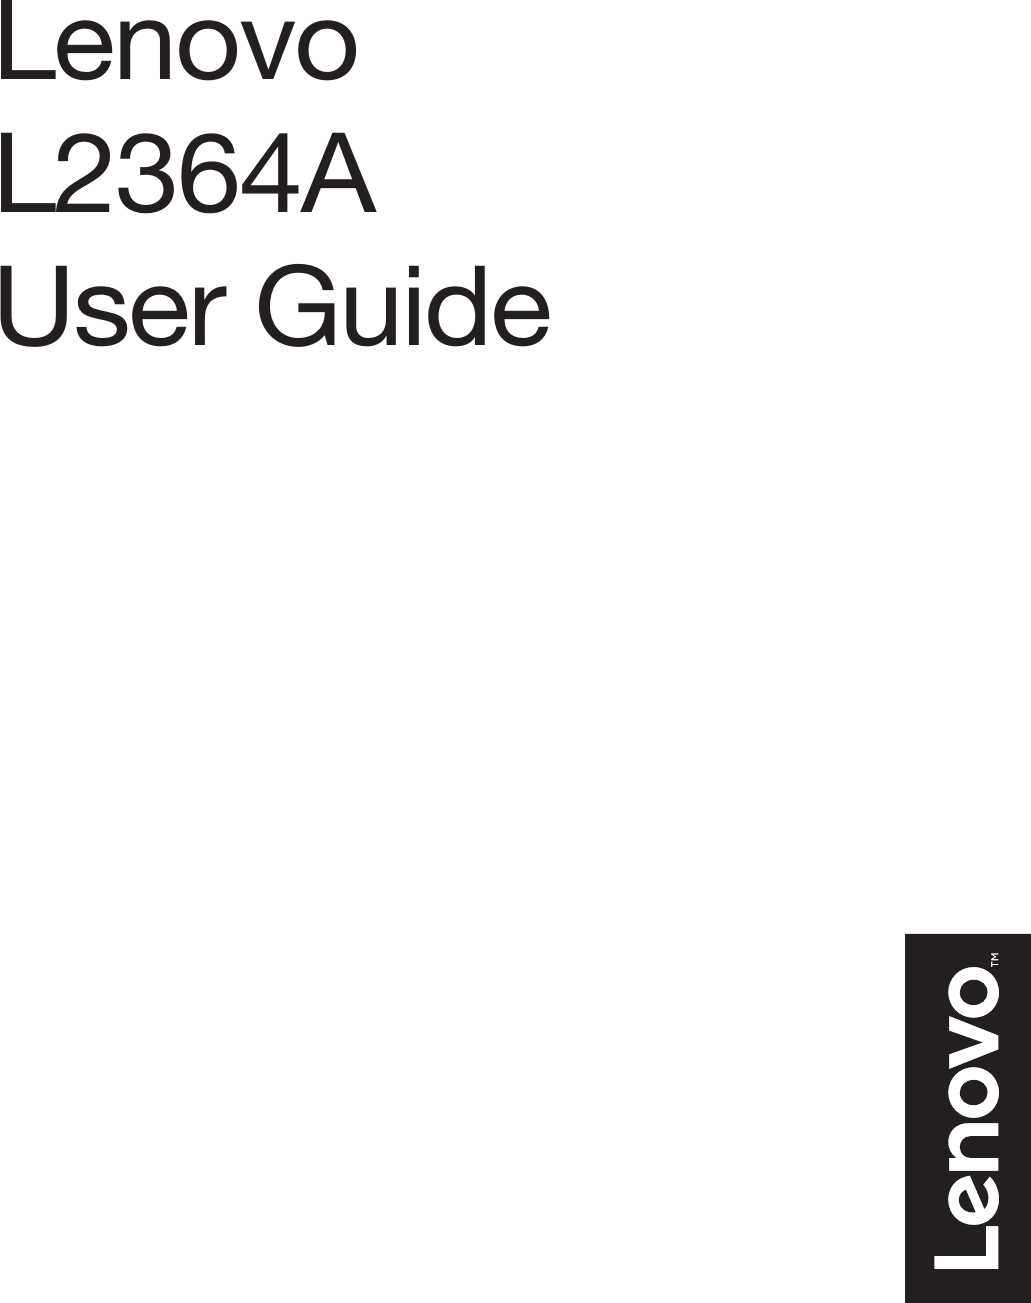 Lenovo Li2364D En V2.0 201609 User Manual (English) Guide